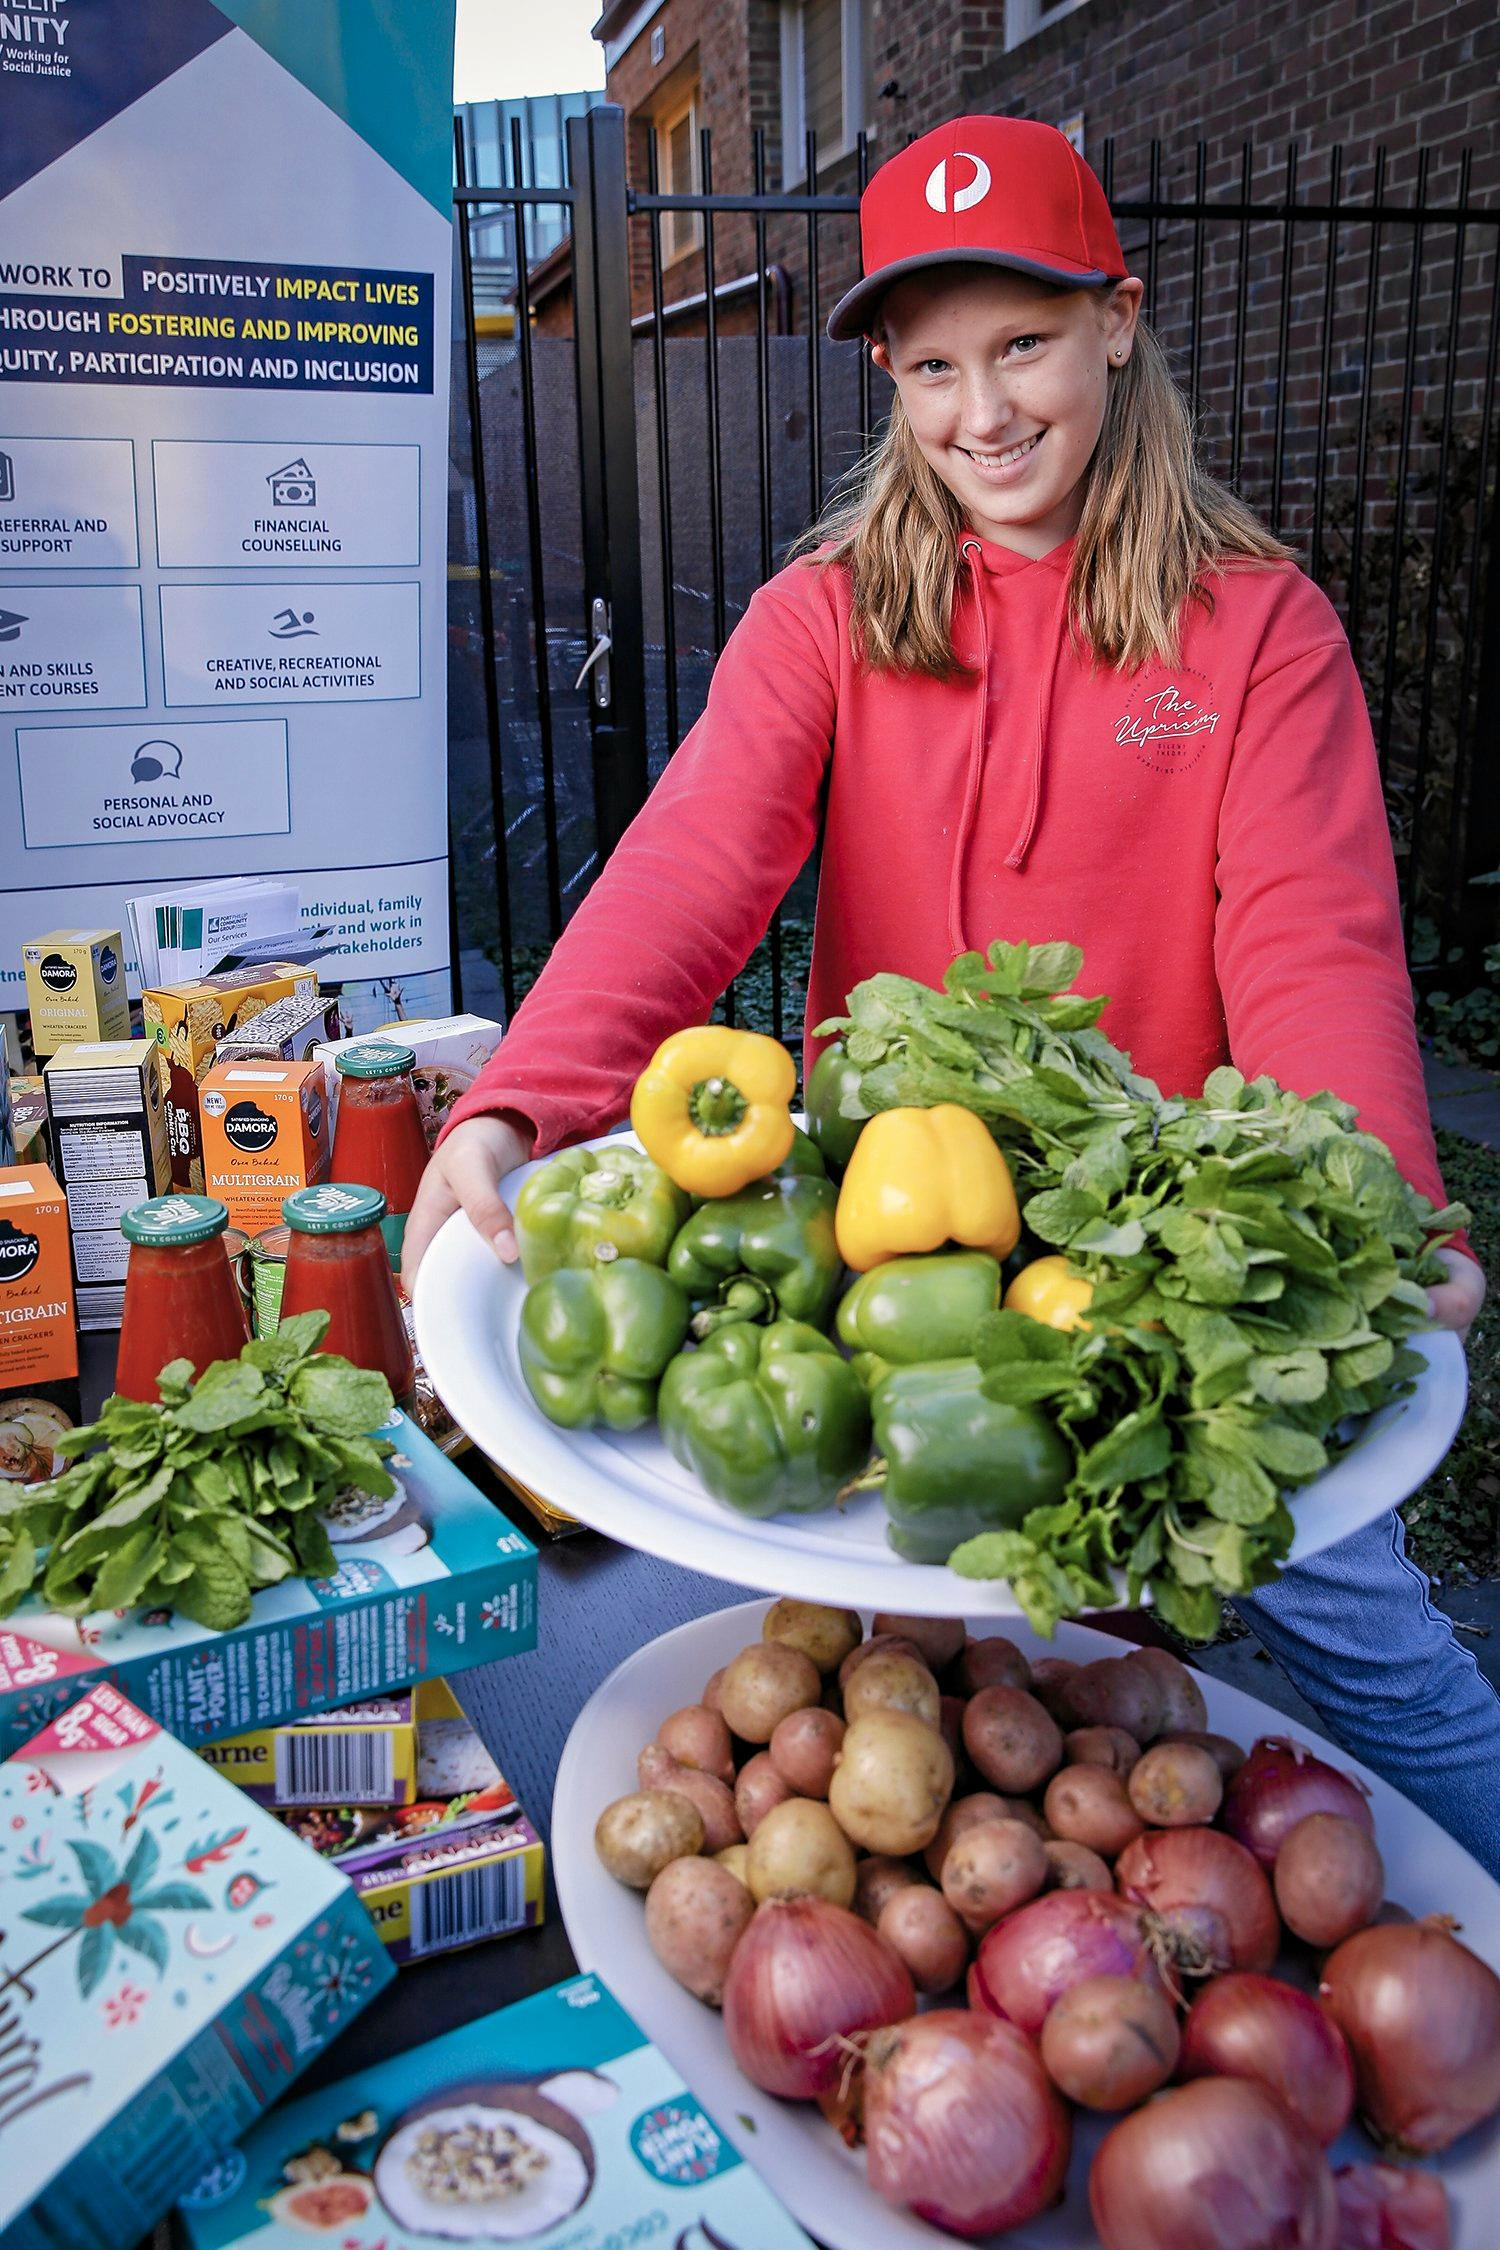 COMMUNITY GRANTS: Audrey (12) provides fresh food and groceries to disadvantaged community members.